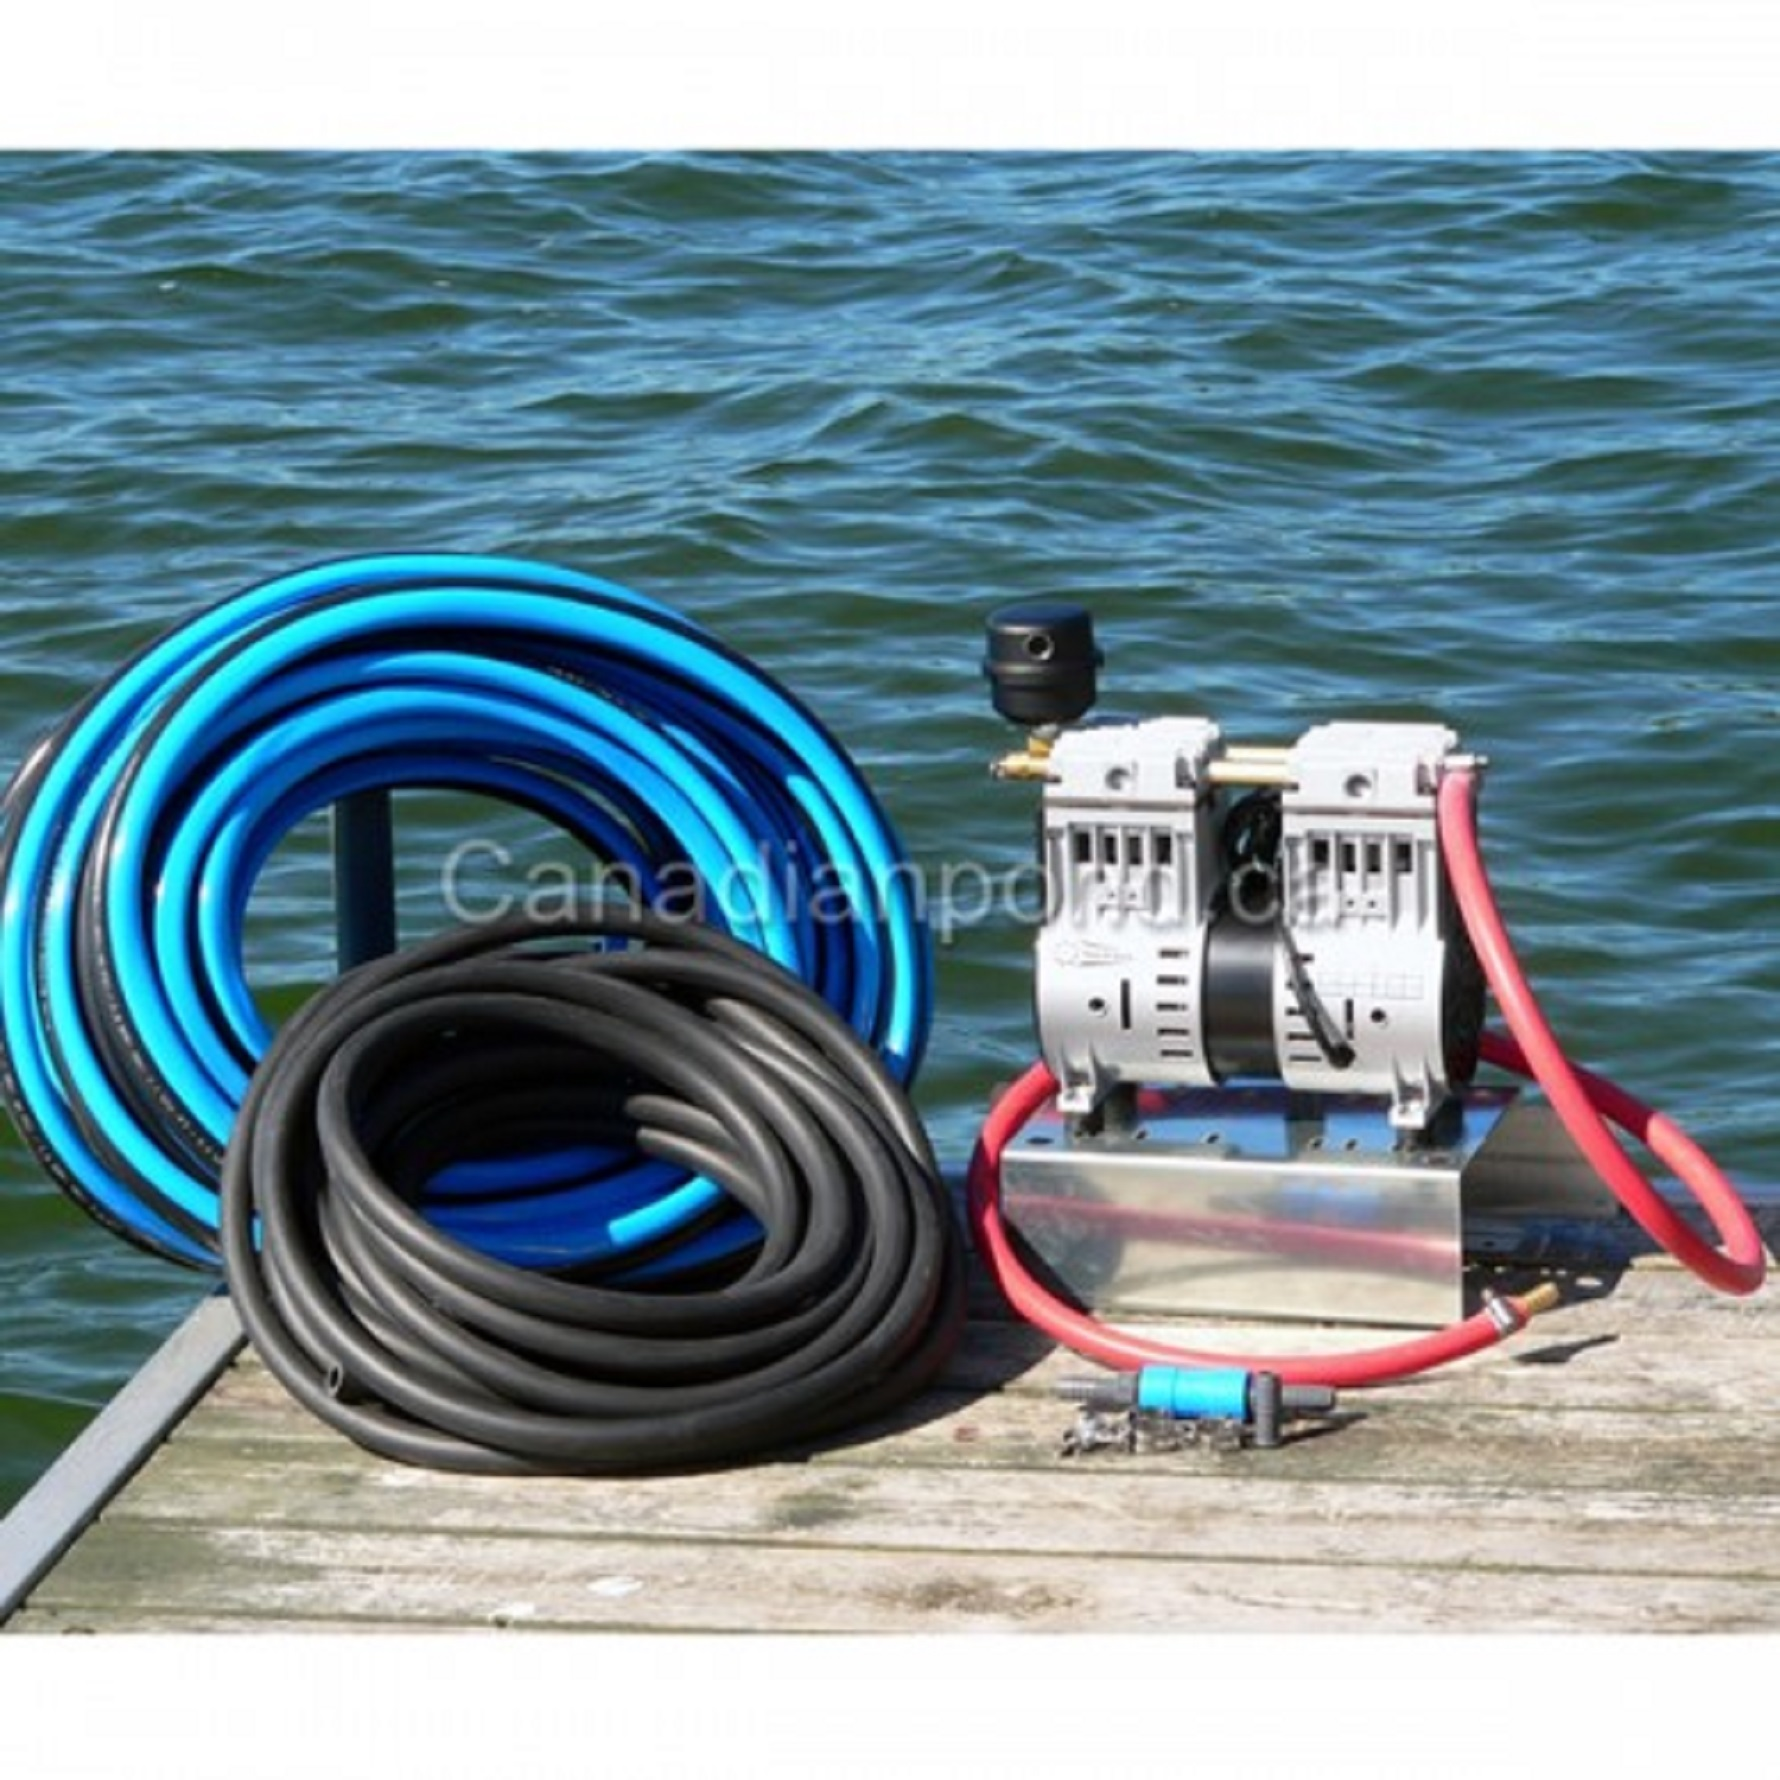 Bubble Tubing is supplied with all fixtures and fittings